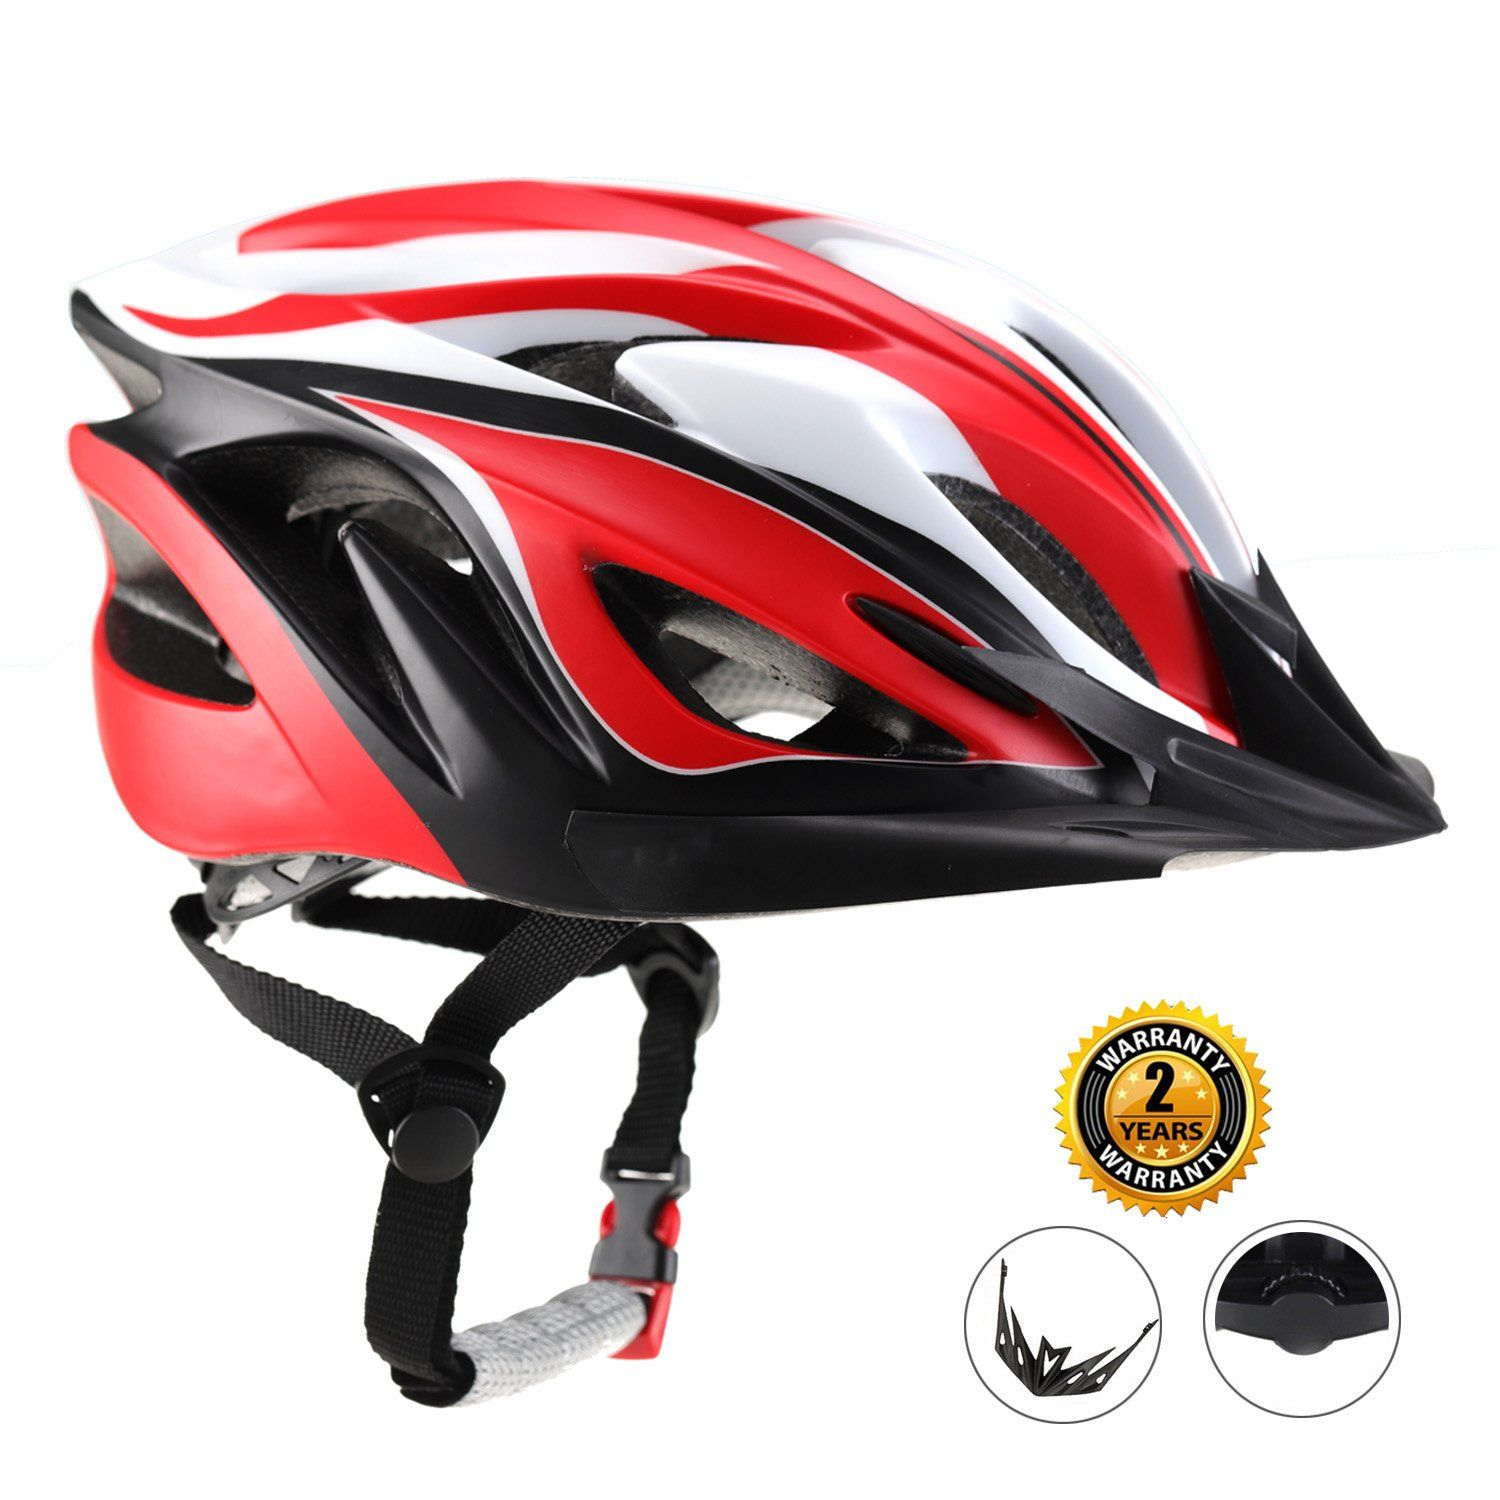 Easecamp Lightweight Bicycle Helmet For Adult Men And Women With